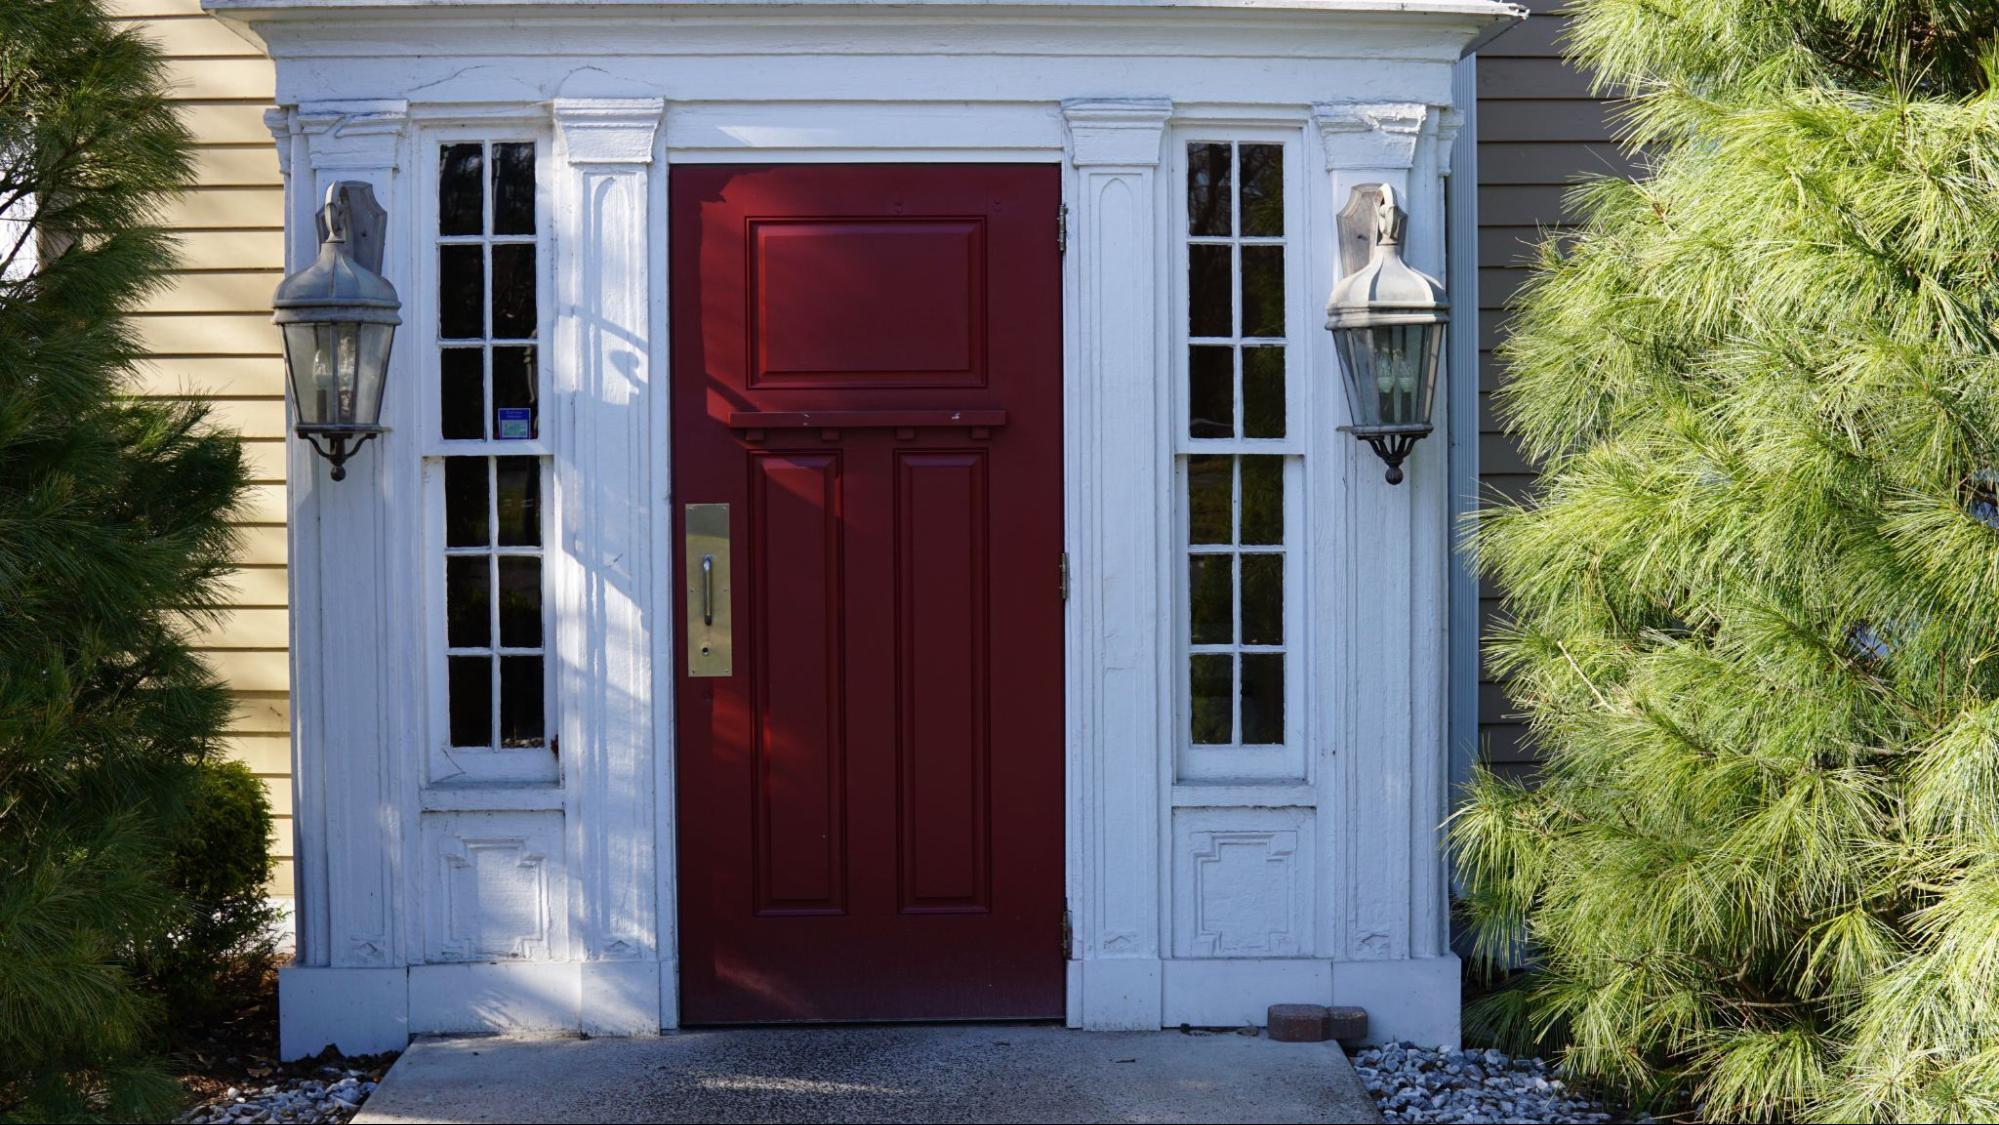 A red solid wood door amidst the white facade of a house